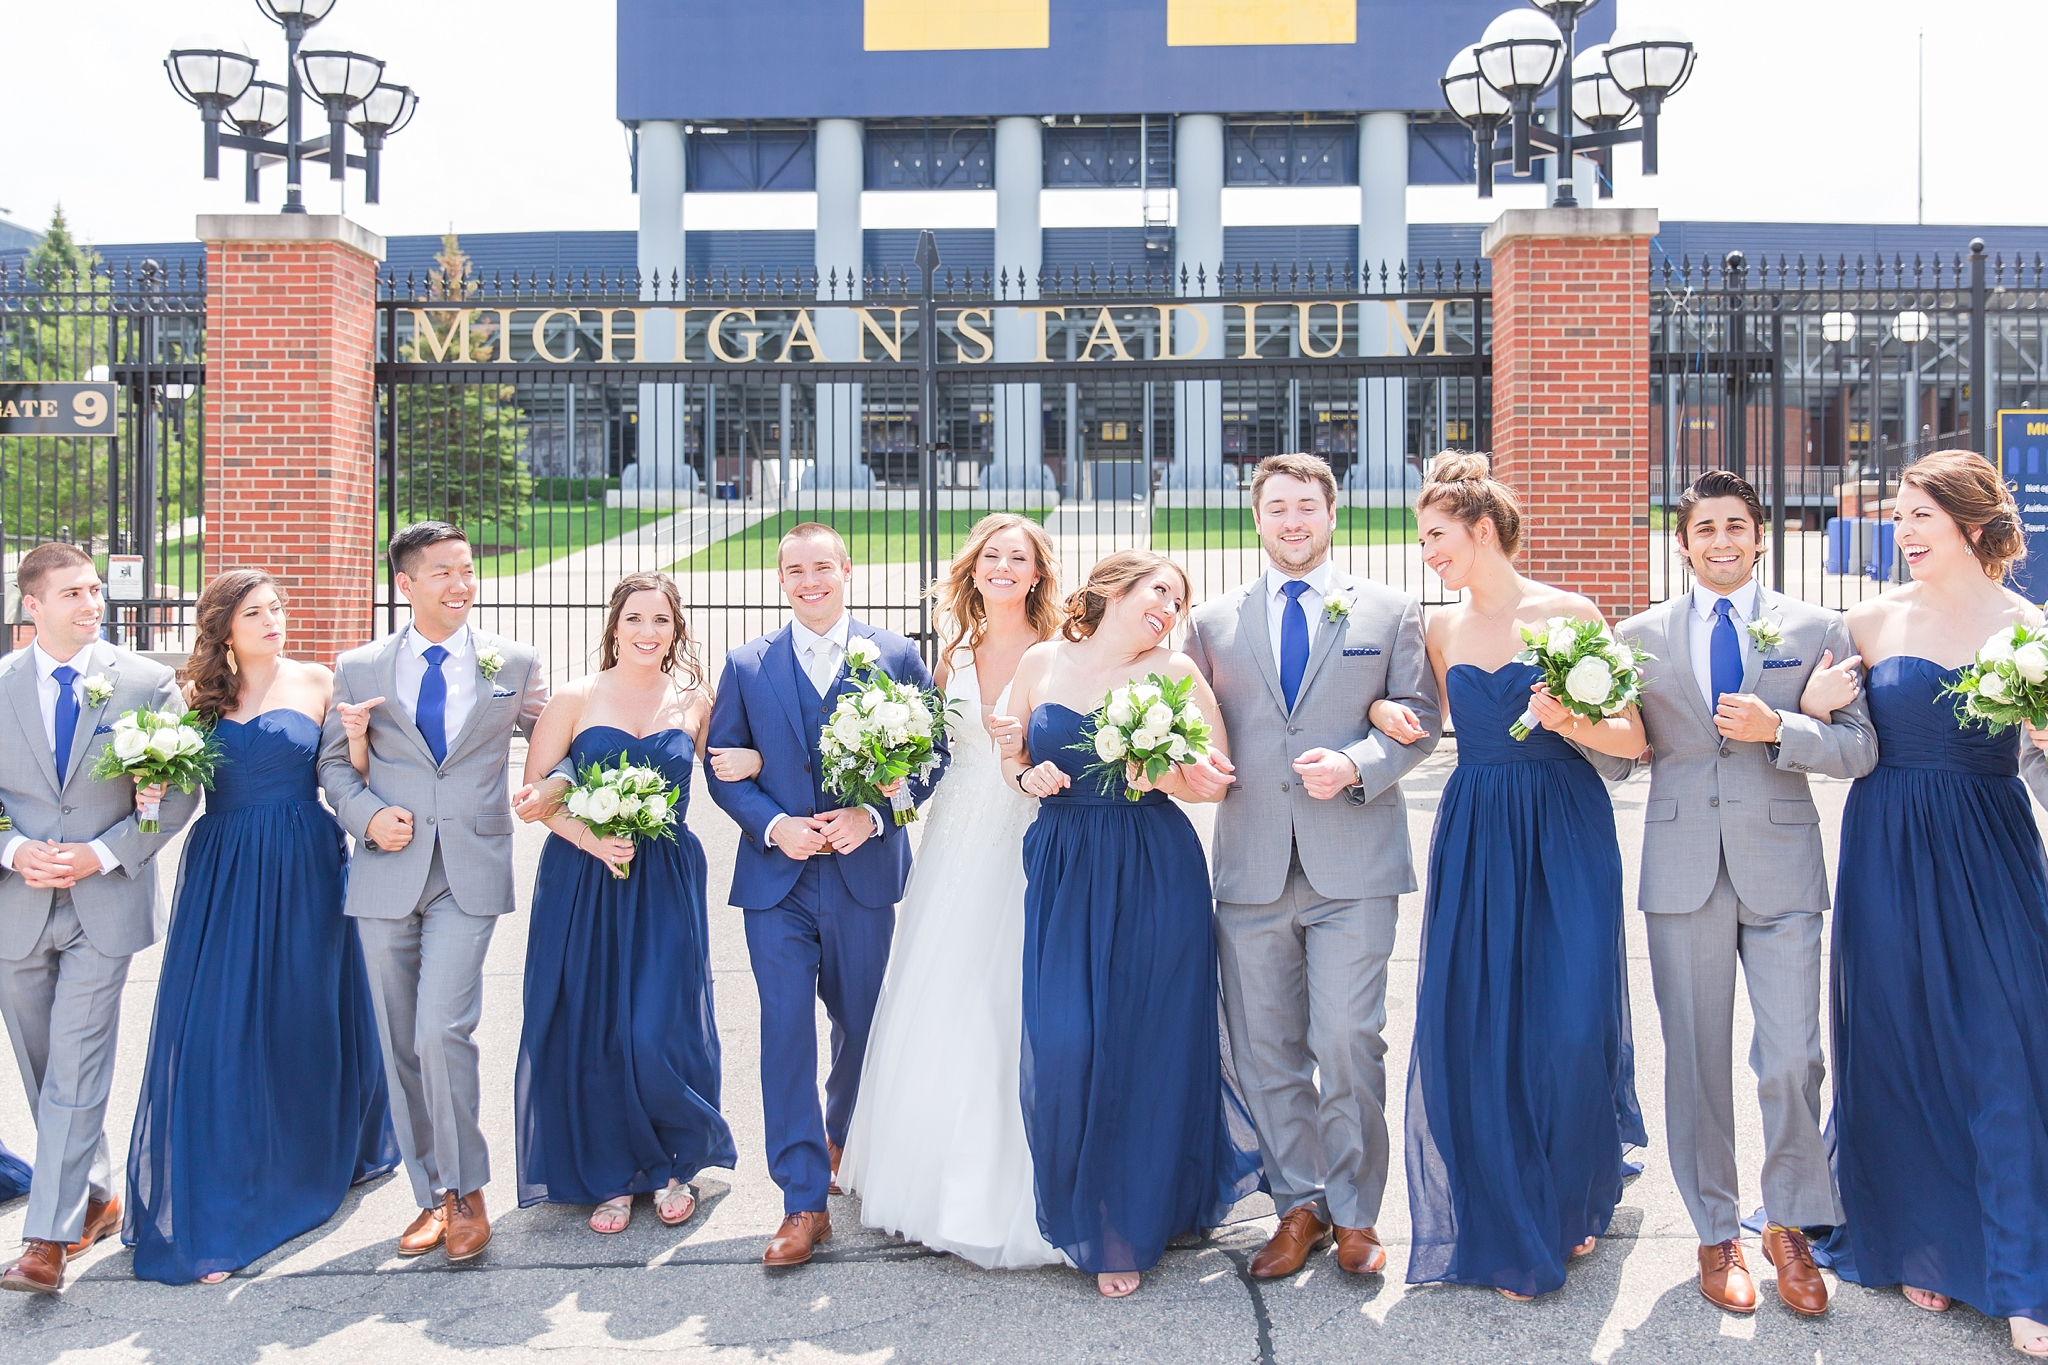 joyful-candid-laid-back-wedding-photos-in-ann-arbor-michigan-and-at-the-eagle-crest-golf-resort-by-courtney-carolyn-photography_0042.jpg